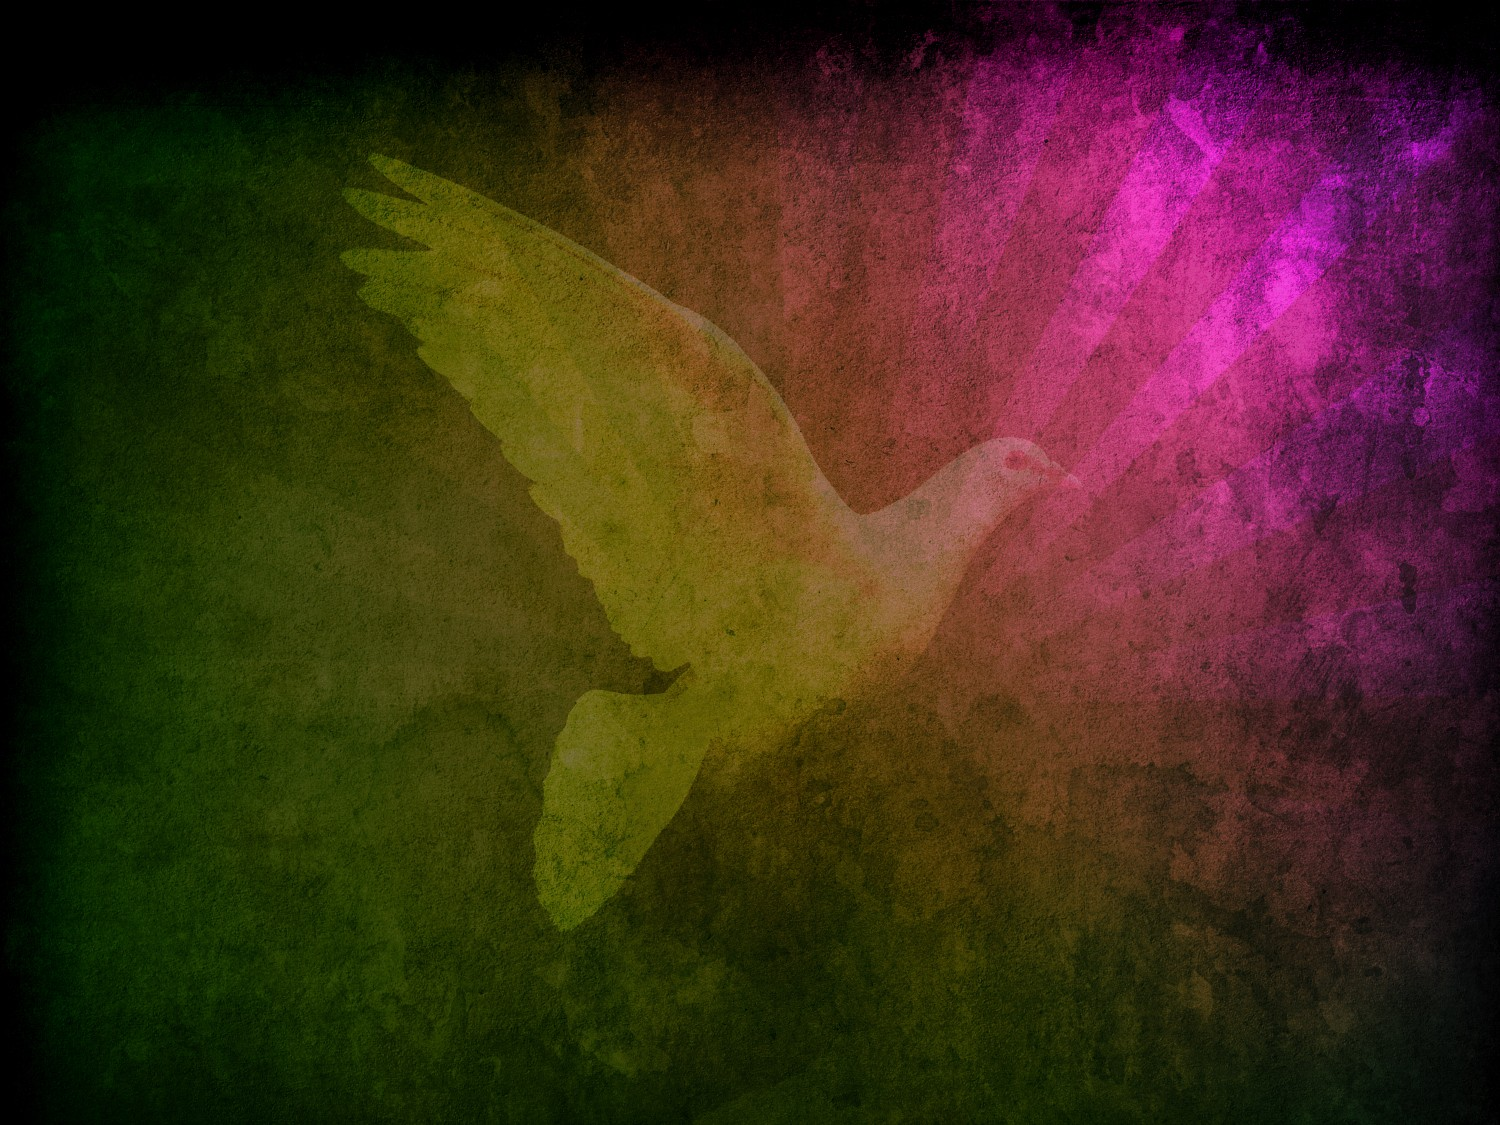 Cool Christian Worship Backgrounds Christian backgrounds for 1500x1125